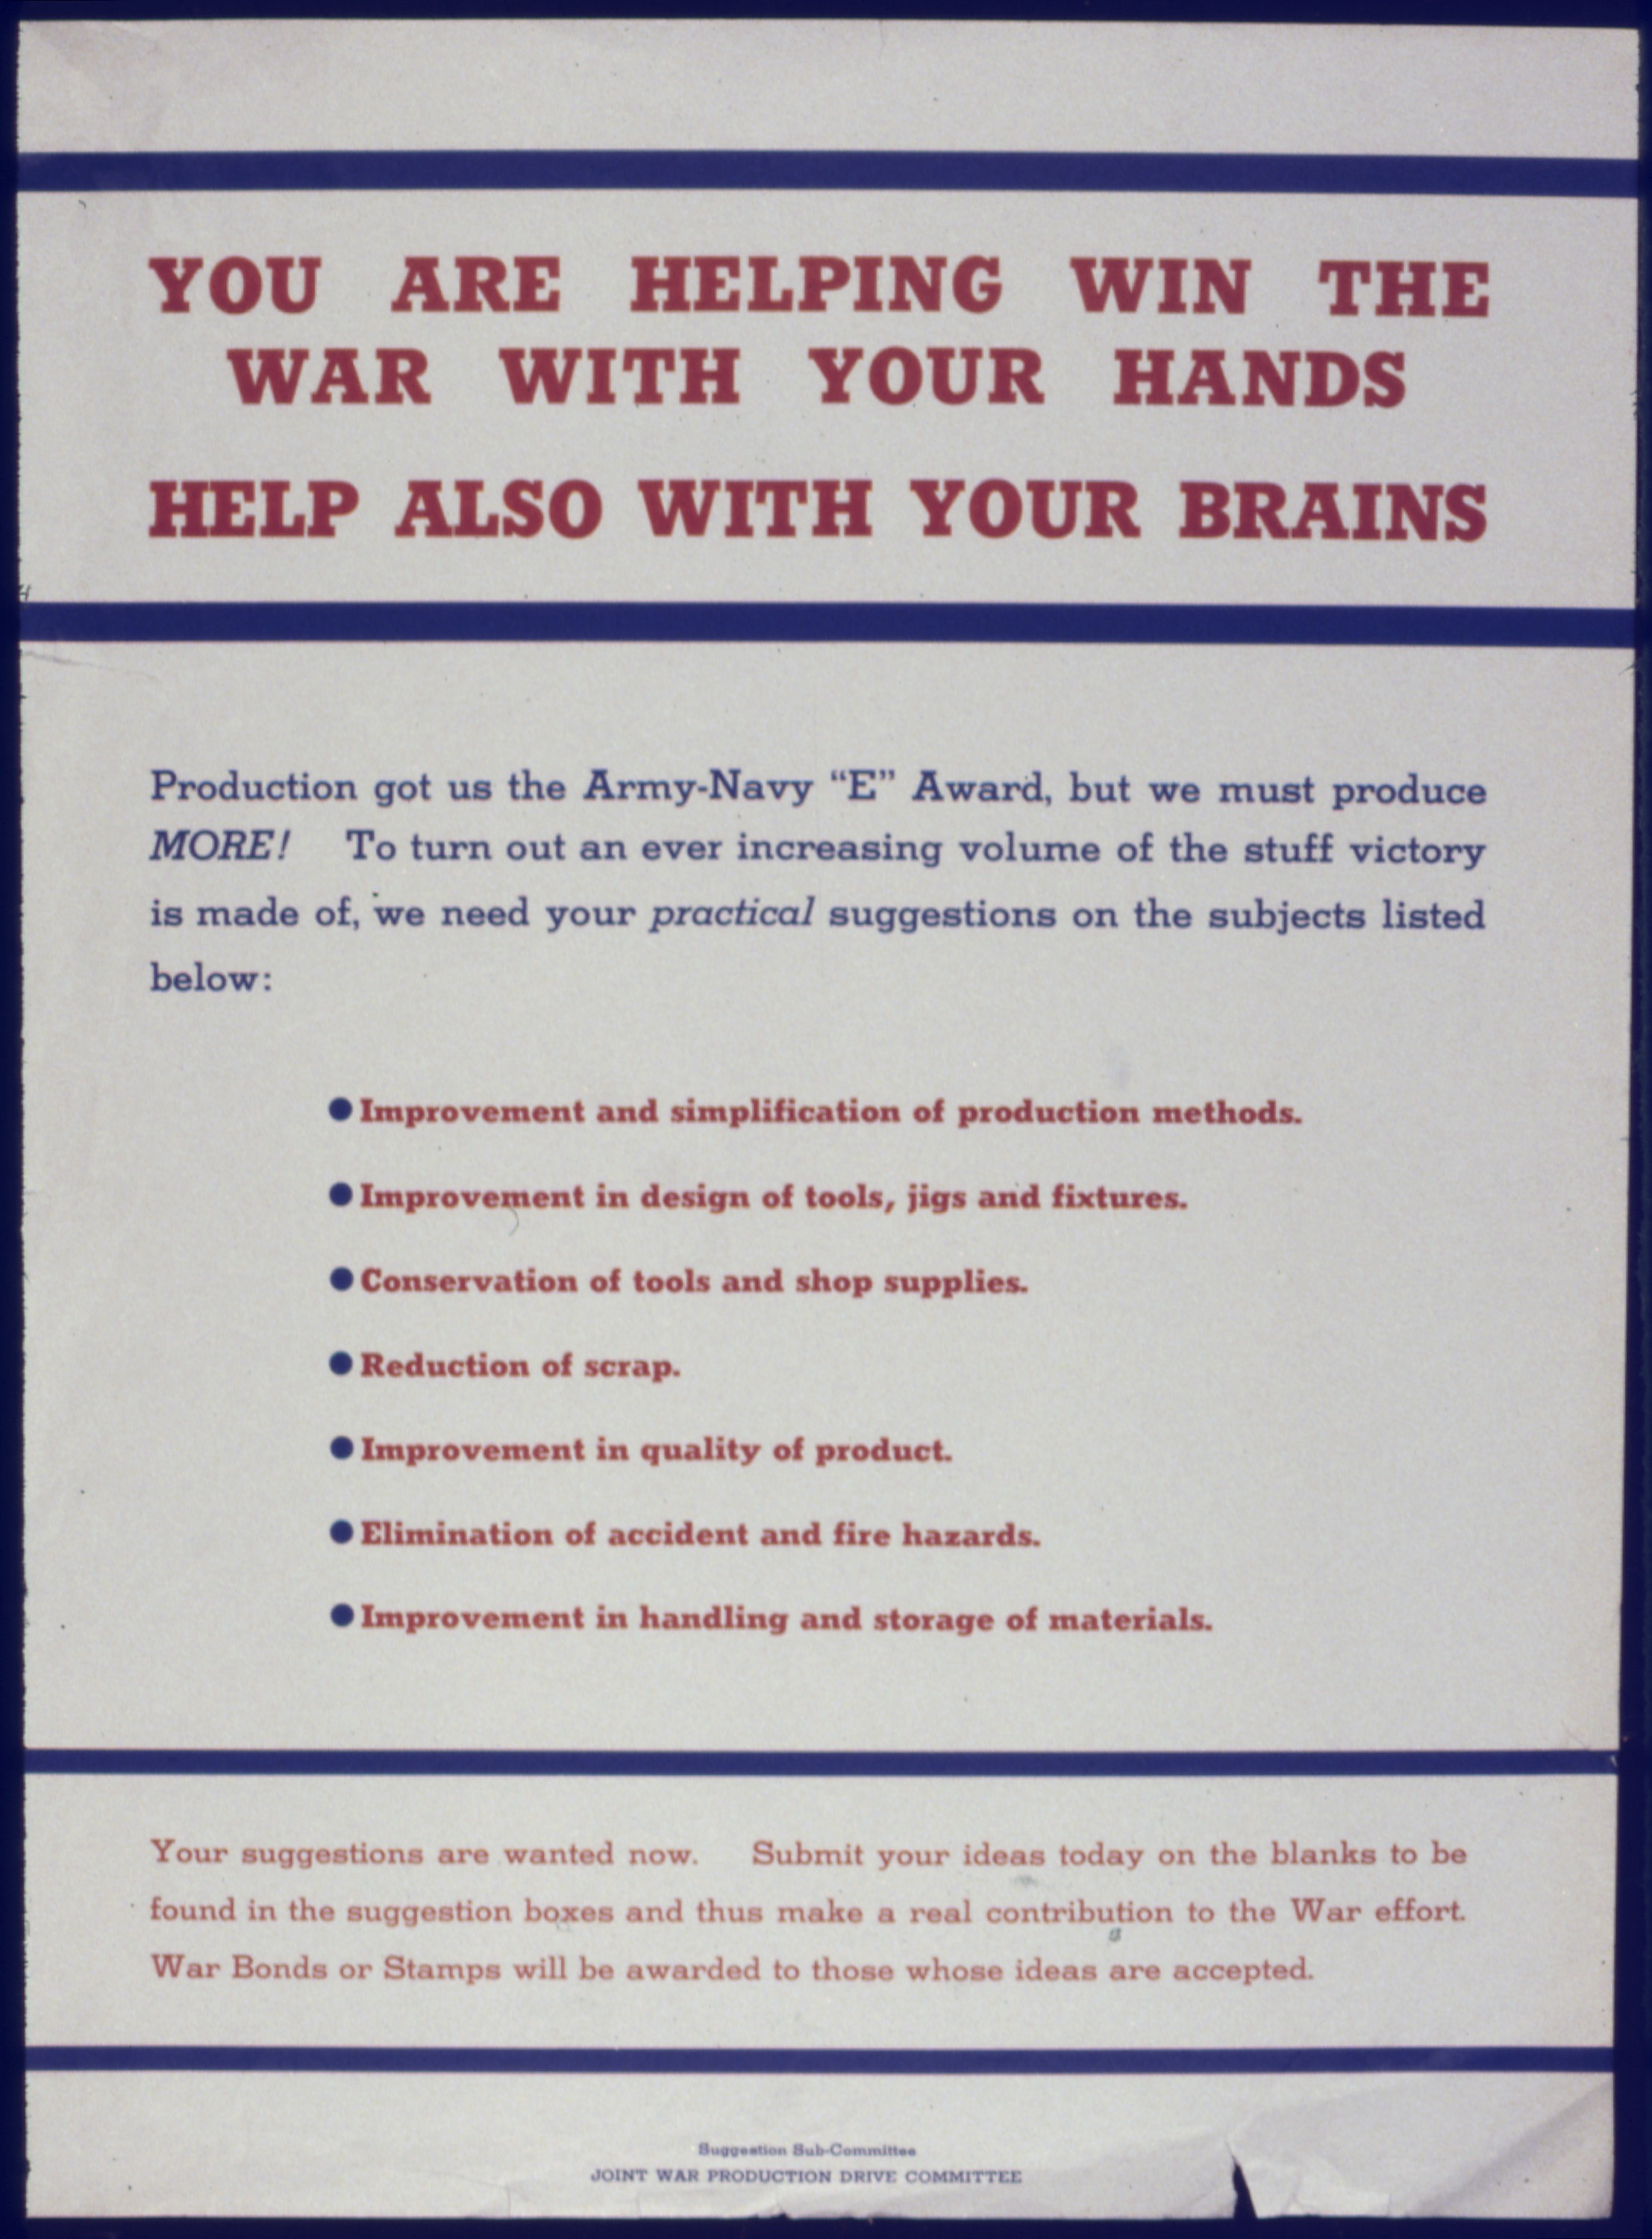 File:You are helping win the war with your hands. Help also with your